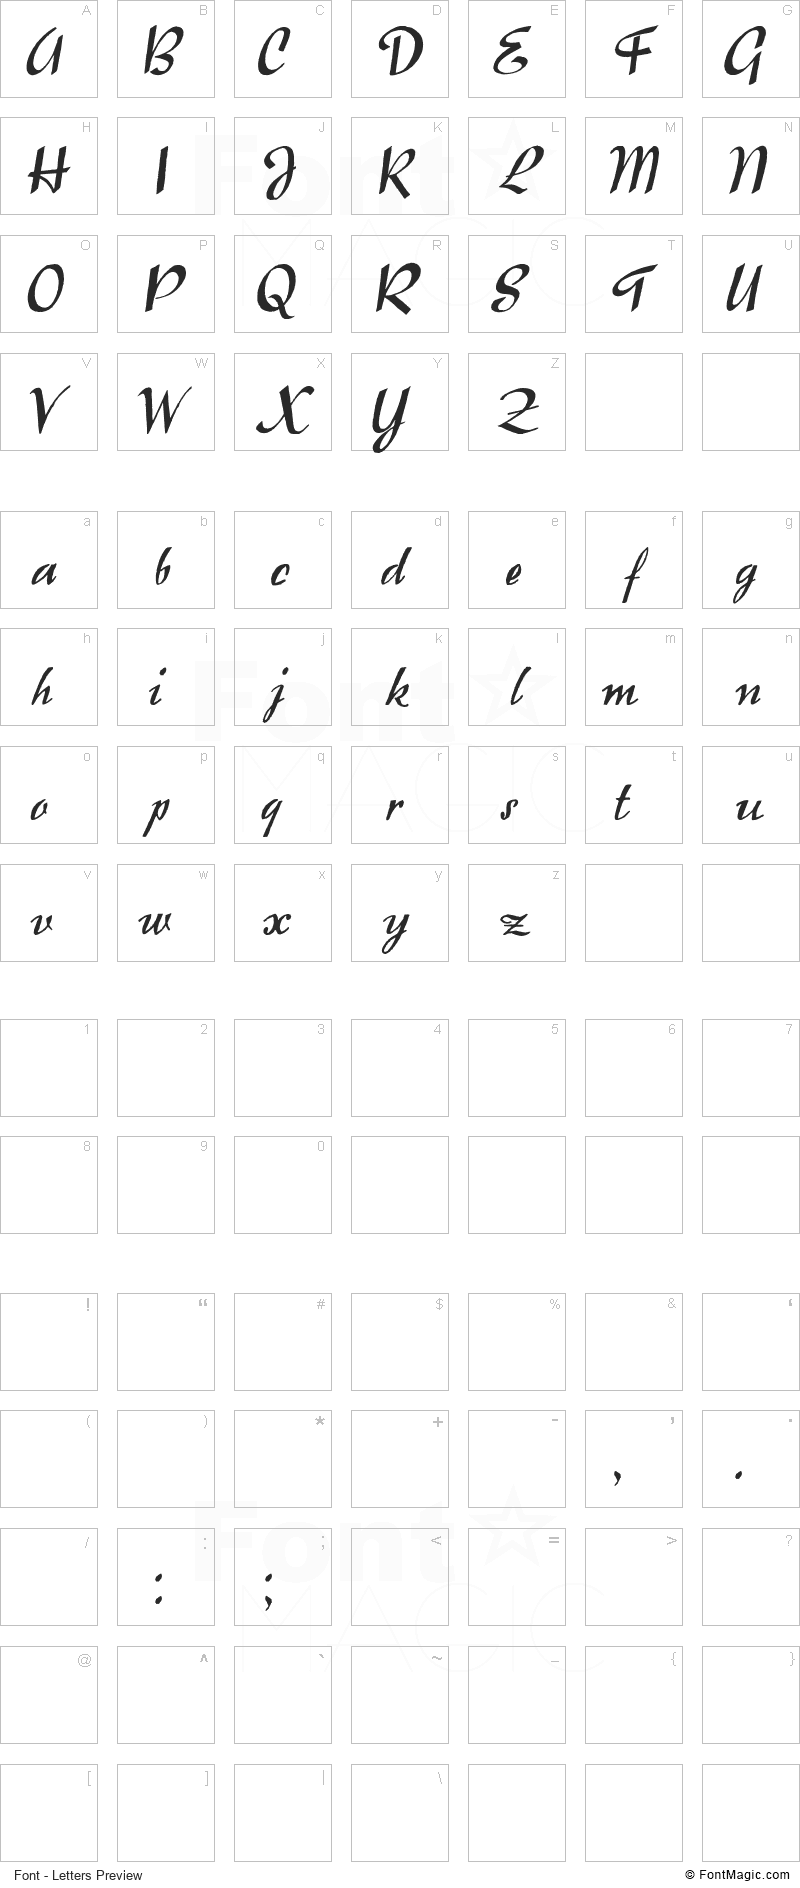 Raindrops Font - All Latters Preview Chart